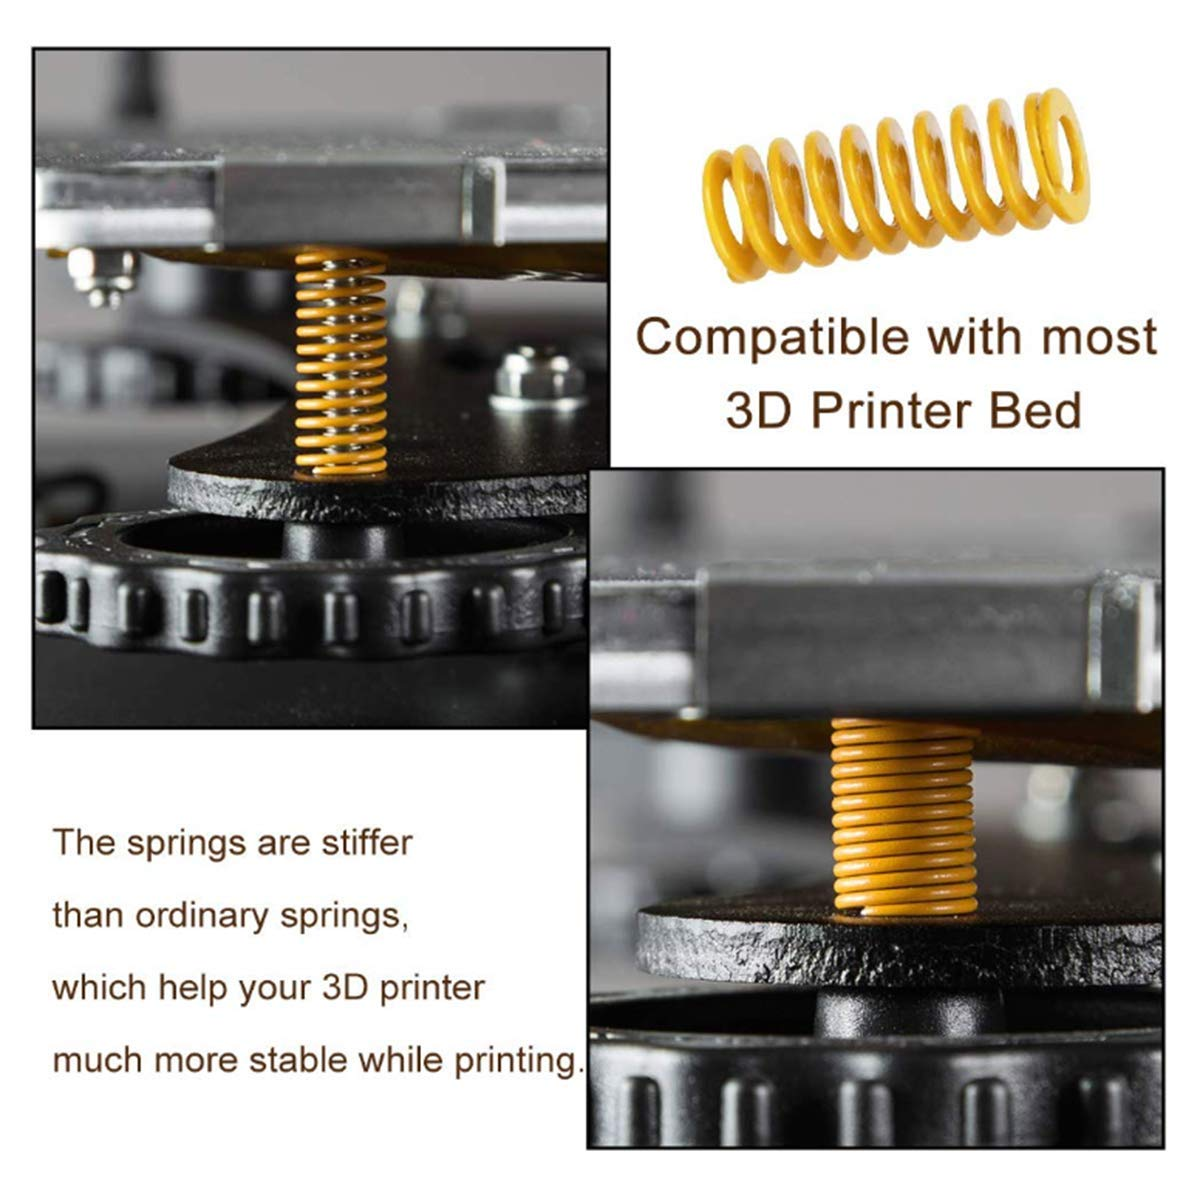 Heatbed Spring for Bottom Connect Leveling 16 Pcs Heated Bed Springs Die Springs Light Load Compression Spring for 3D Printer Creality CR-10 10S S4 Ender 3 Blue/&Yellow, OD 0.31inch, Length 0.78inch